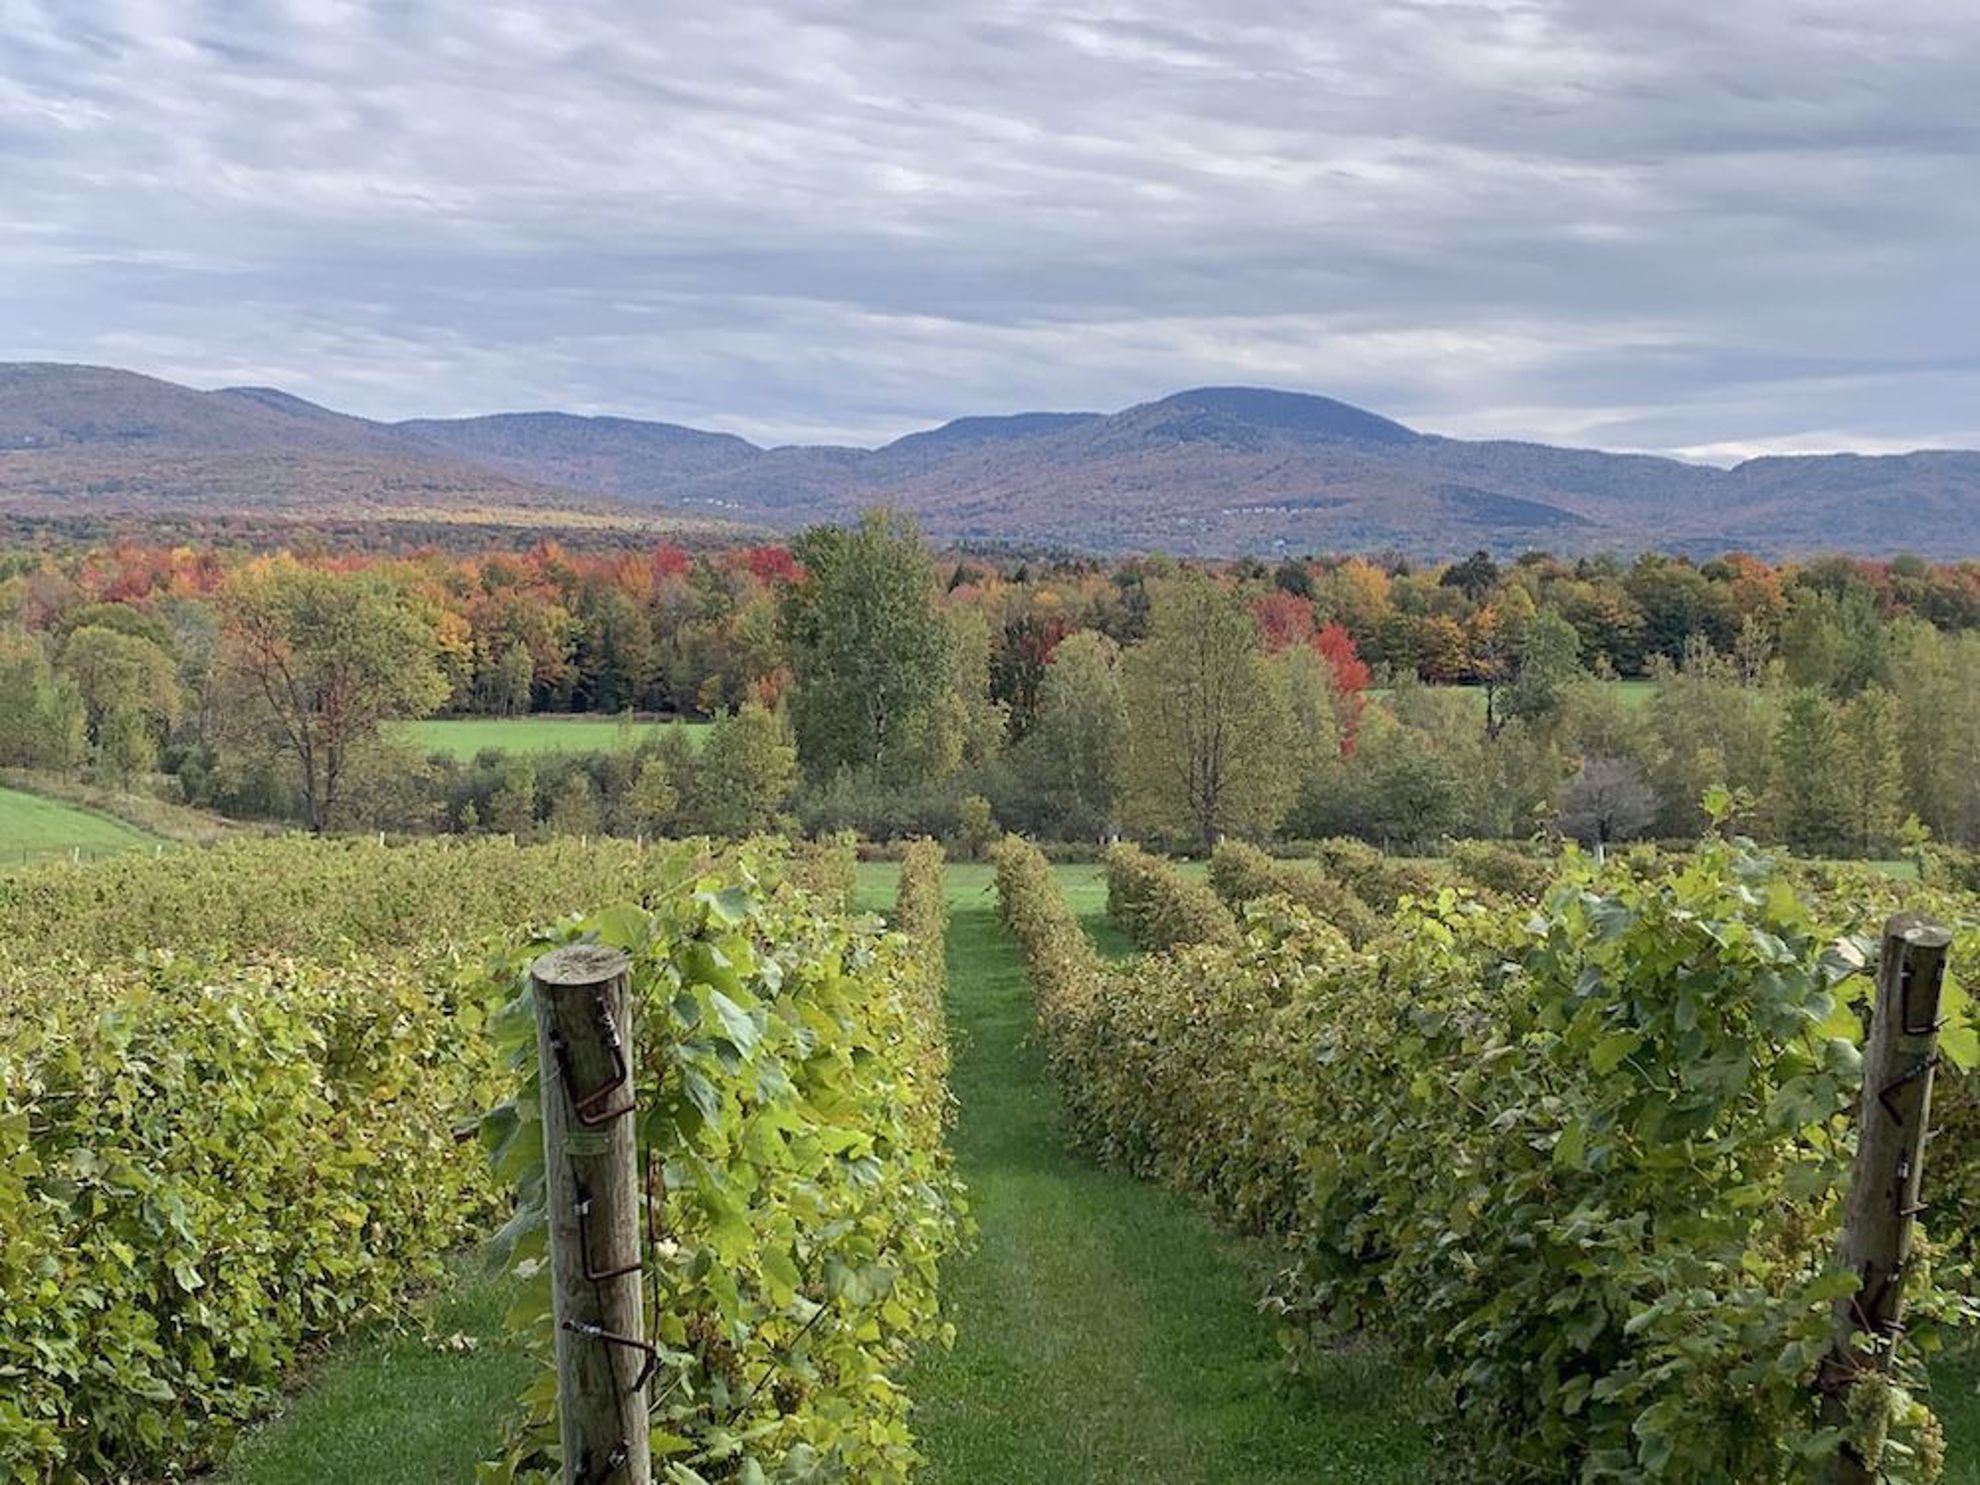 Fall colors over vineyard